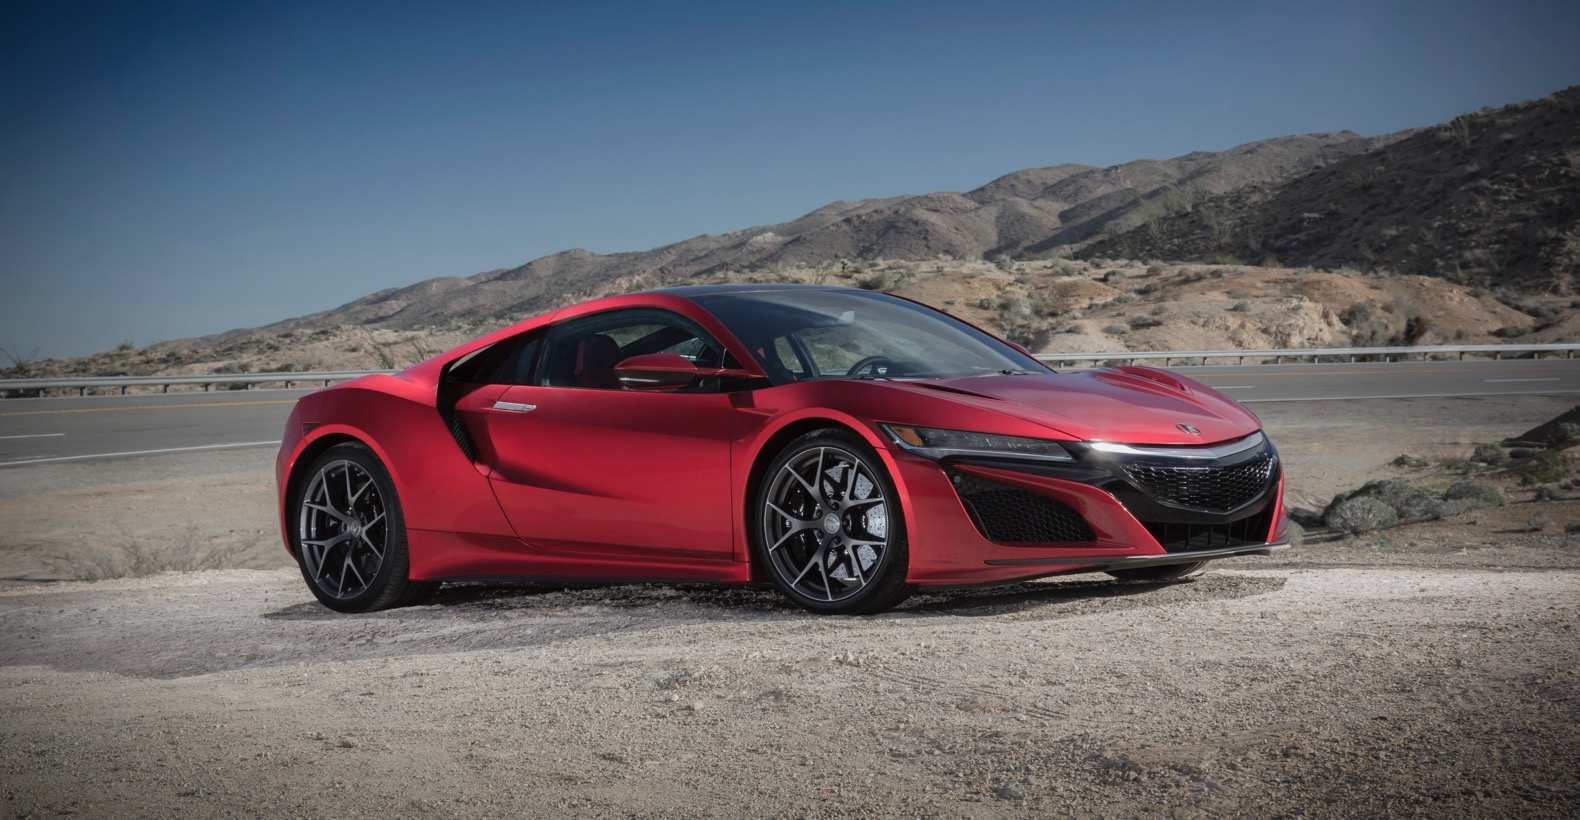 62 Great 2020 Acura NSX New Concept by 2020 Acura NSX